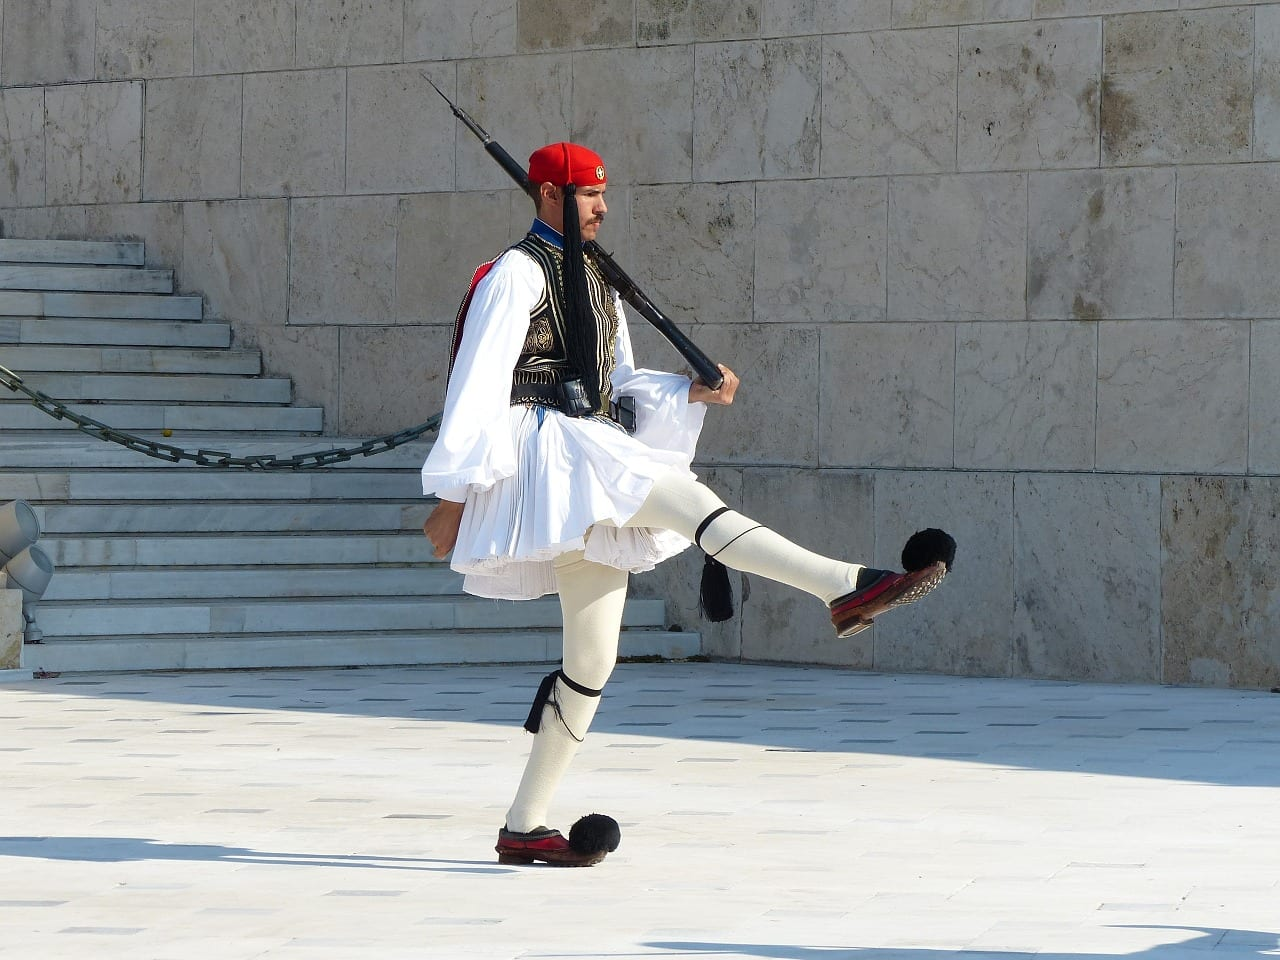 Fun and interesting facts about Greece that may surprise you.